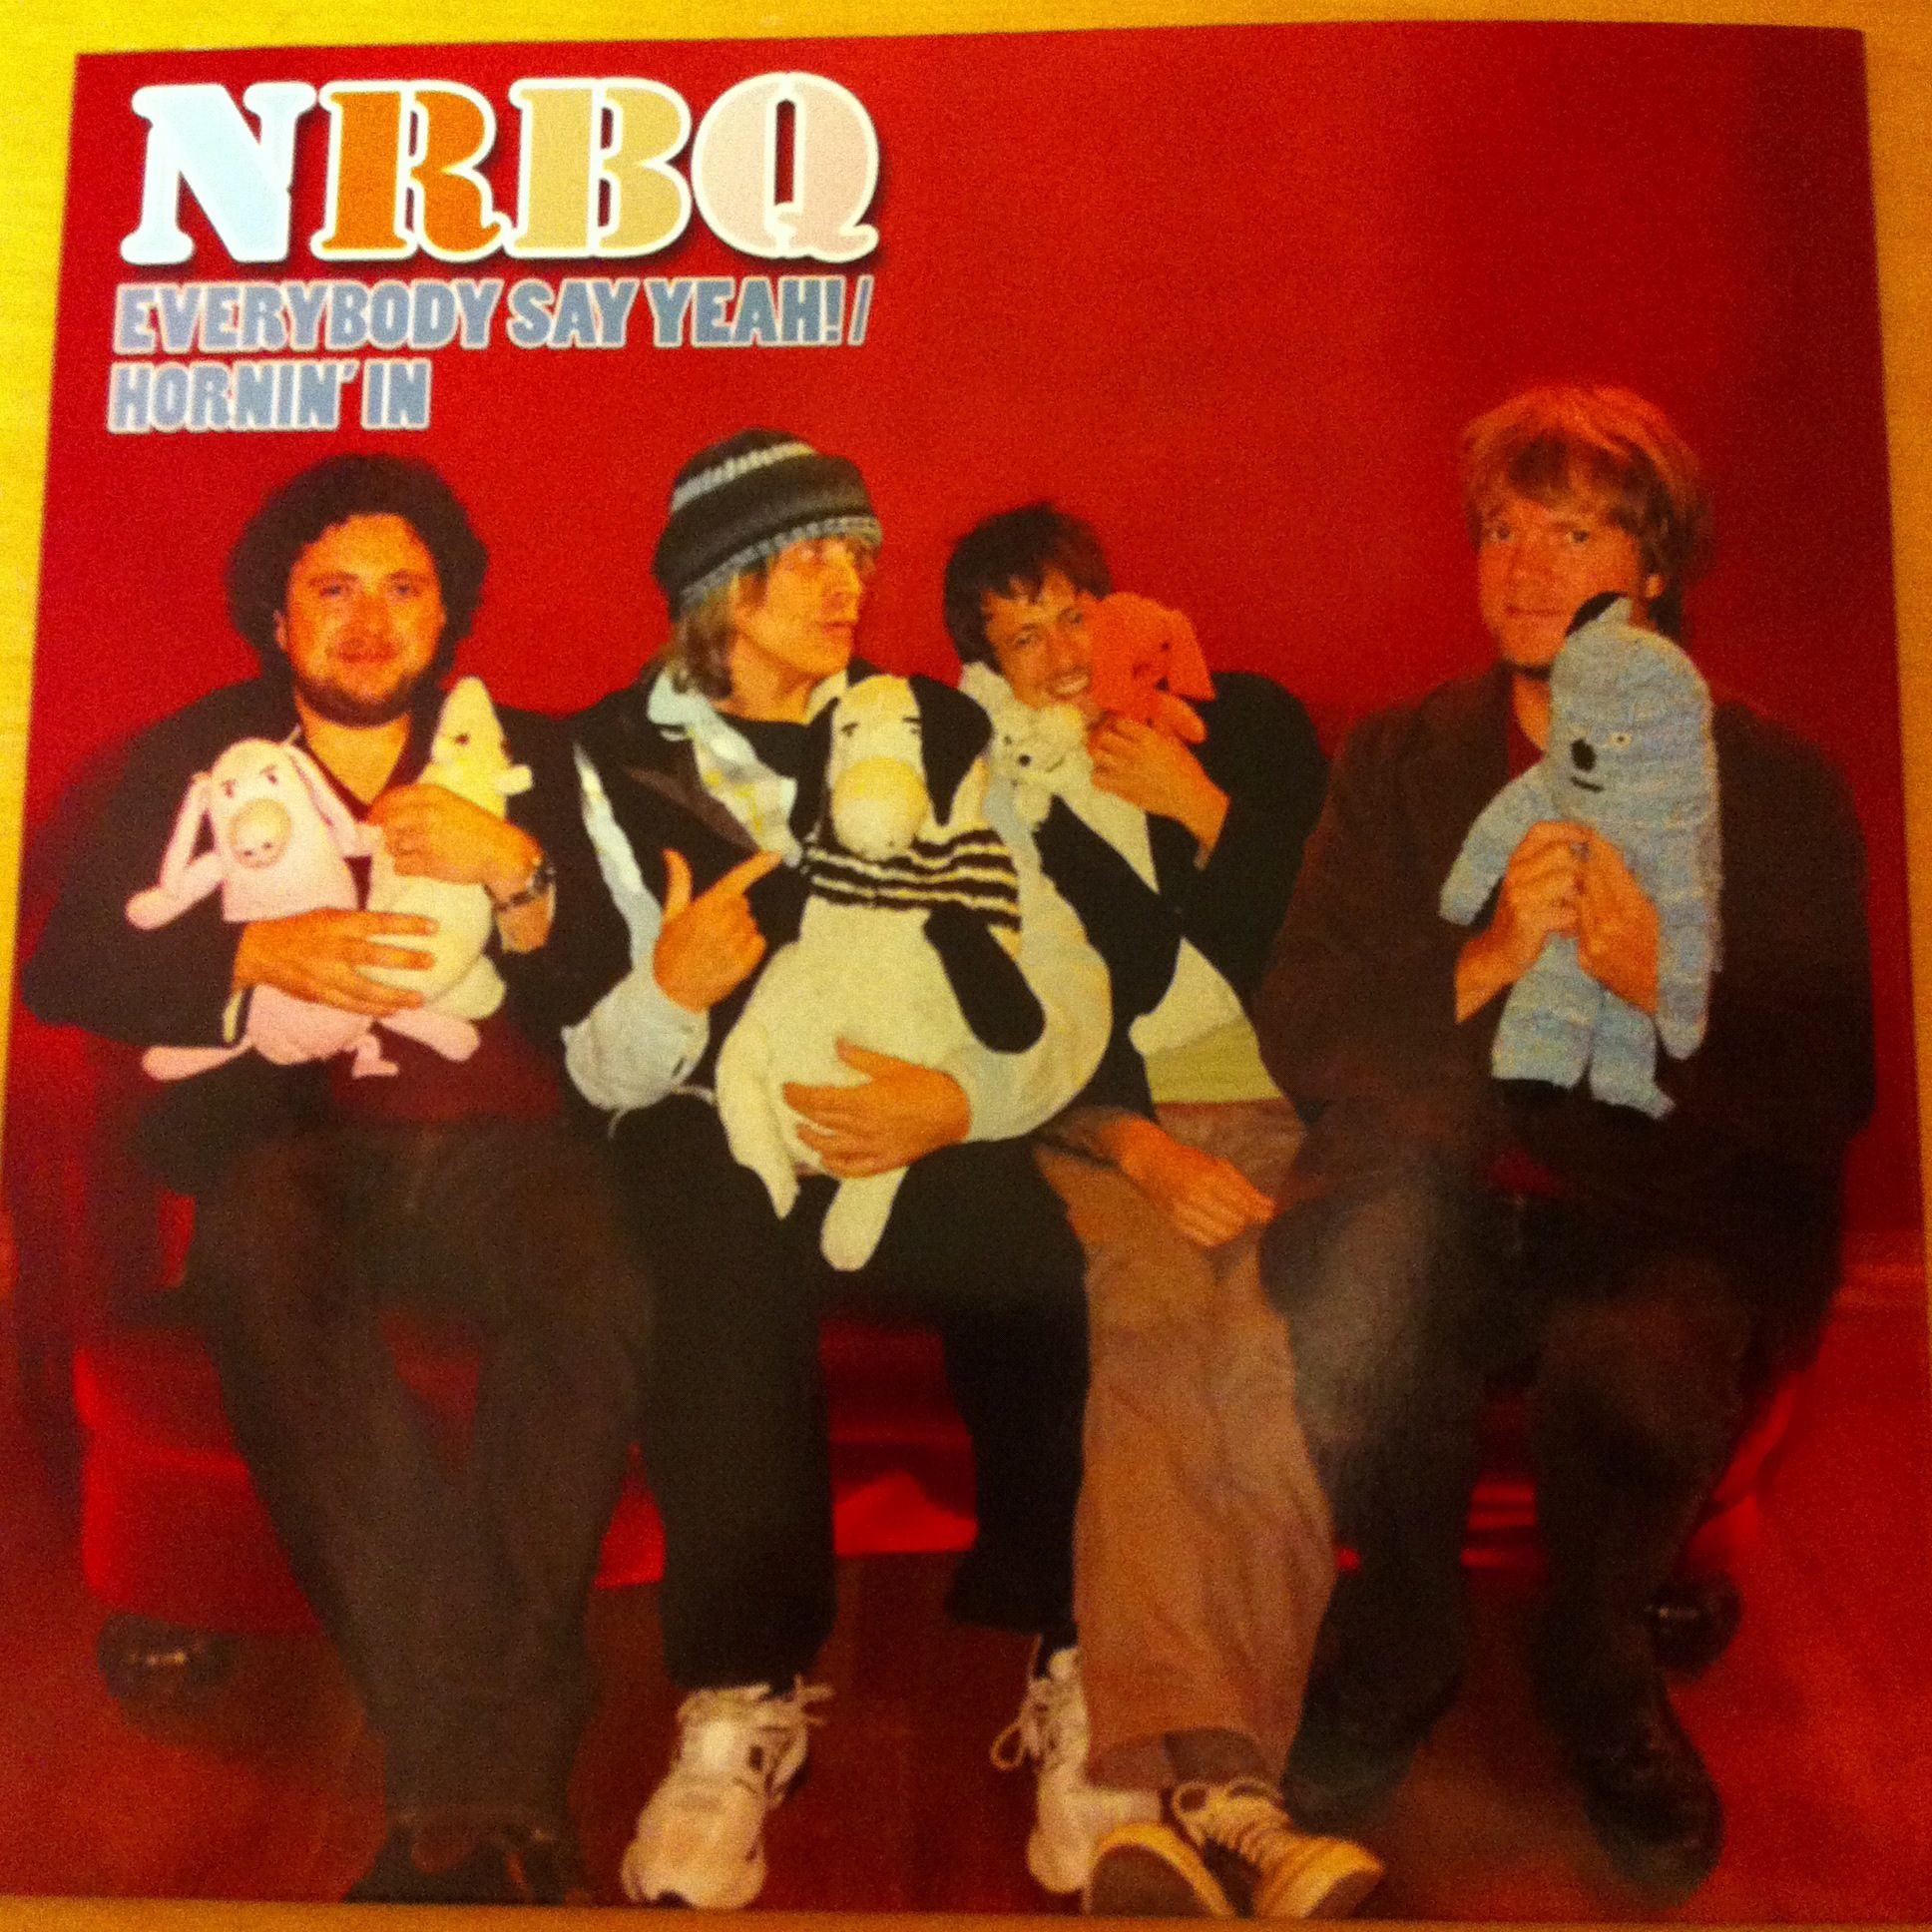 NRBQ / Everybody Say Yeah! / Hornin' In 7inch Euclid records 2012